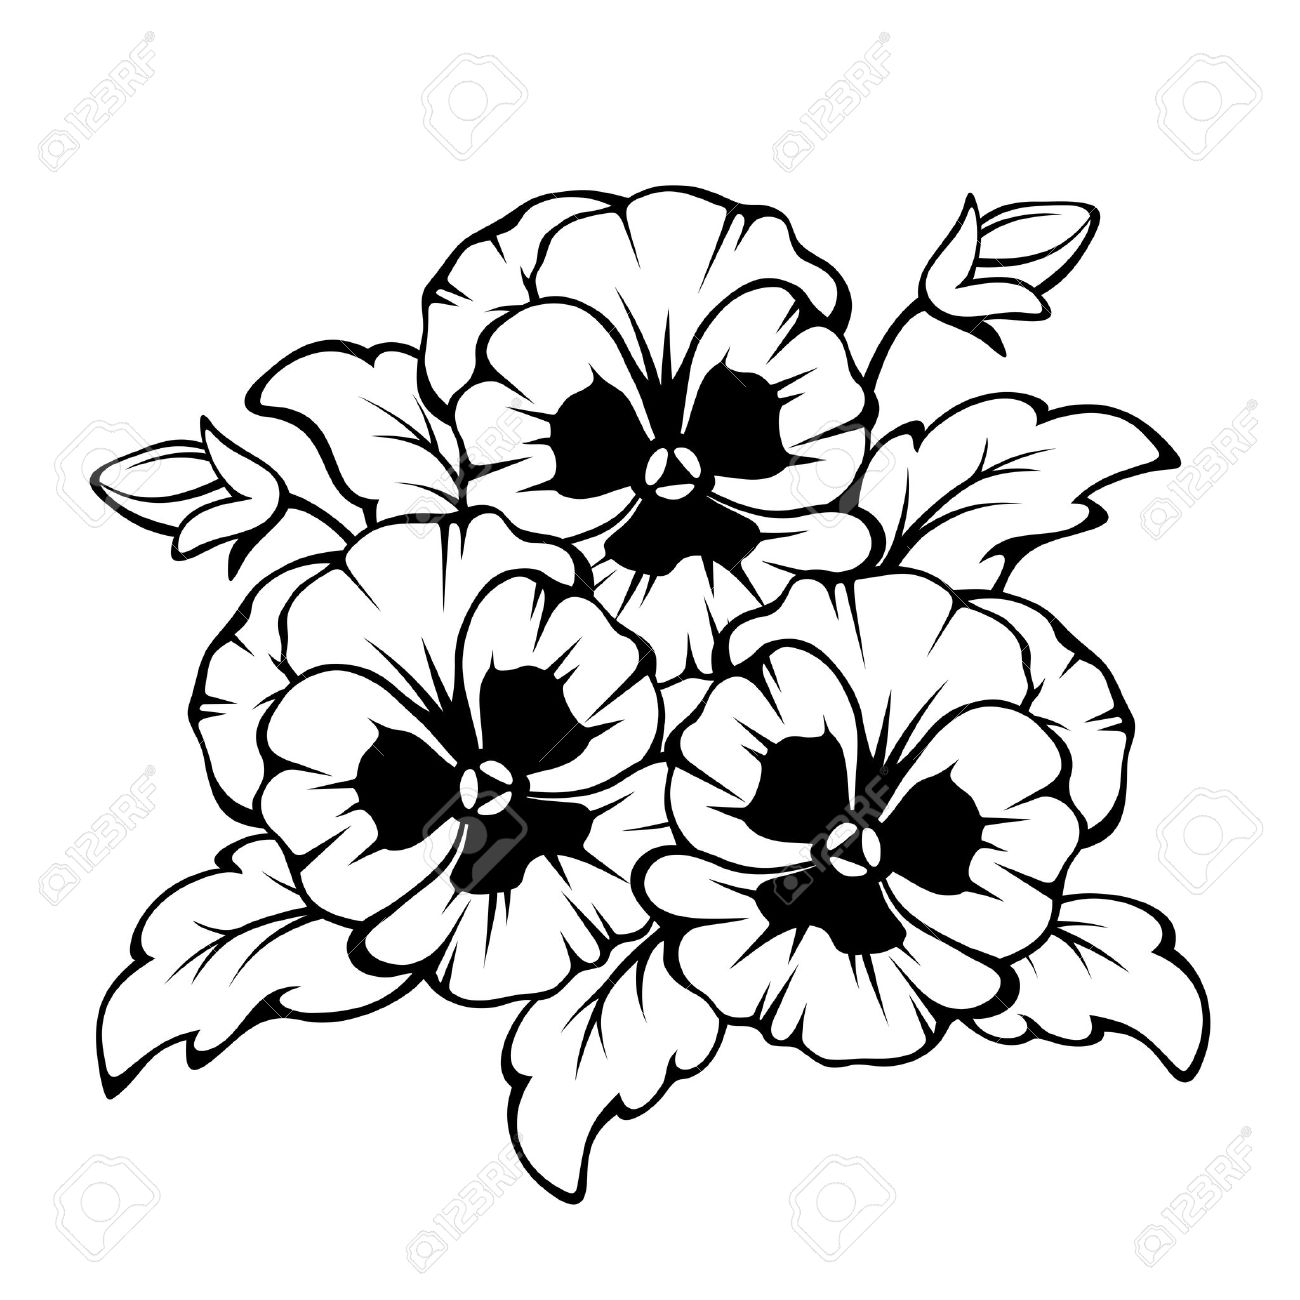 Vector black contour of pansy flowers isolated on a white background. - 62773180